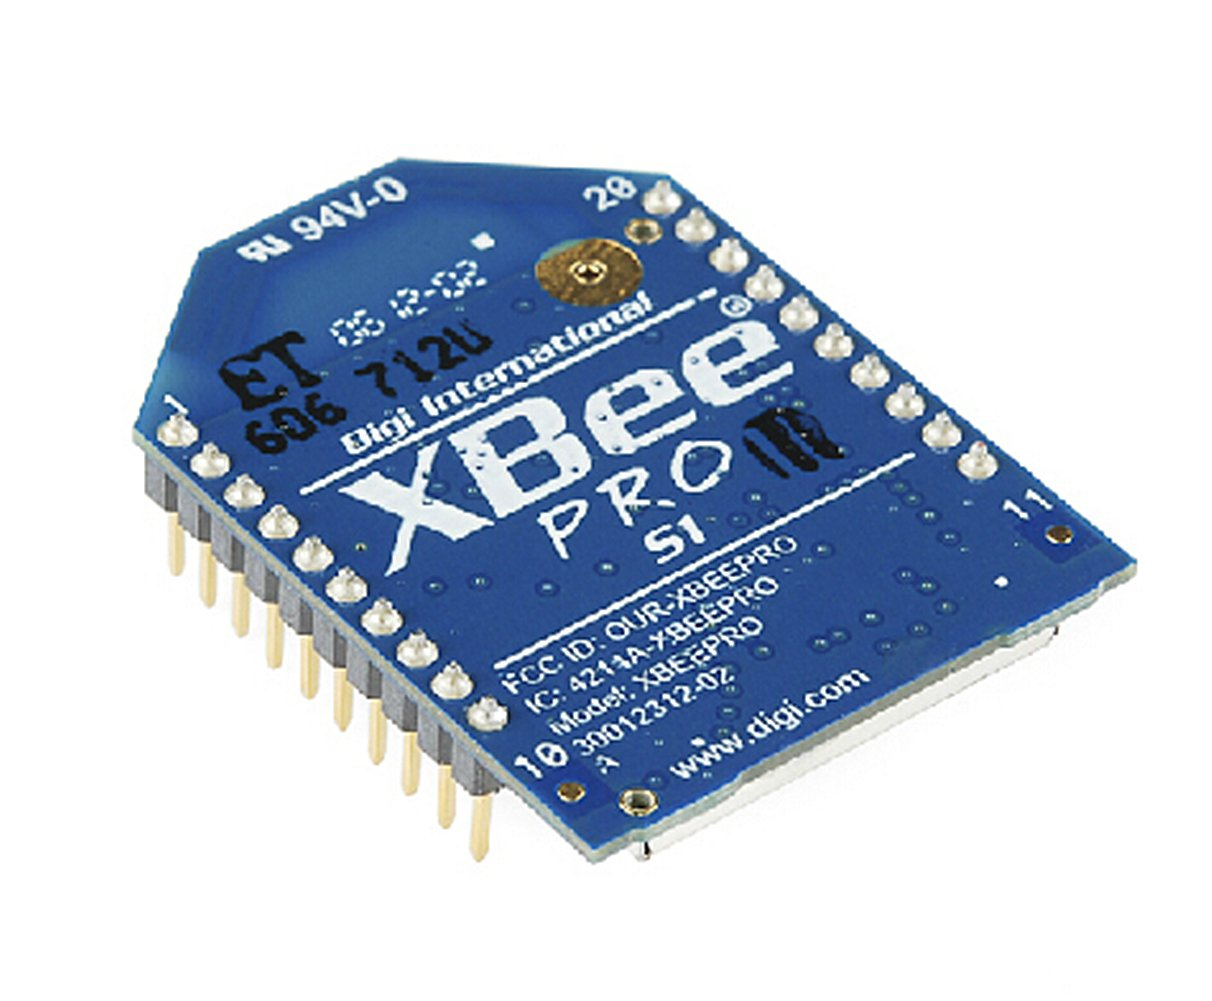 Xbee Pro 60mw PCB Antenna - Series 1computers, Systems, Really Anything With A Serial Port! Point To Point And Multi-Point Networks Are Supported by D&F